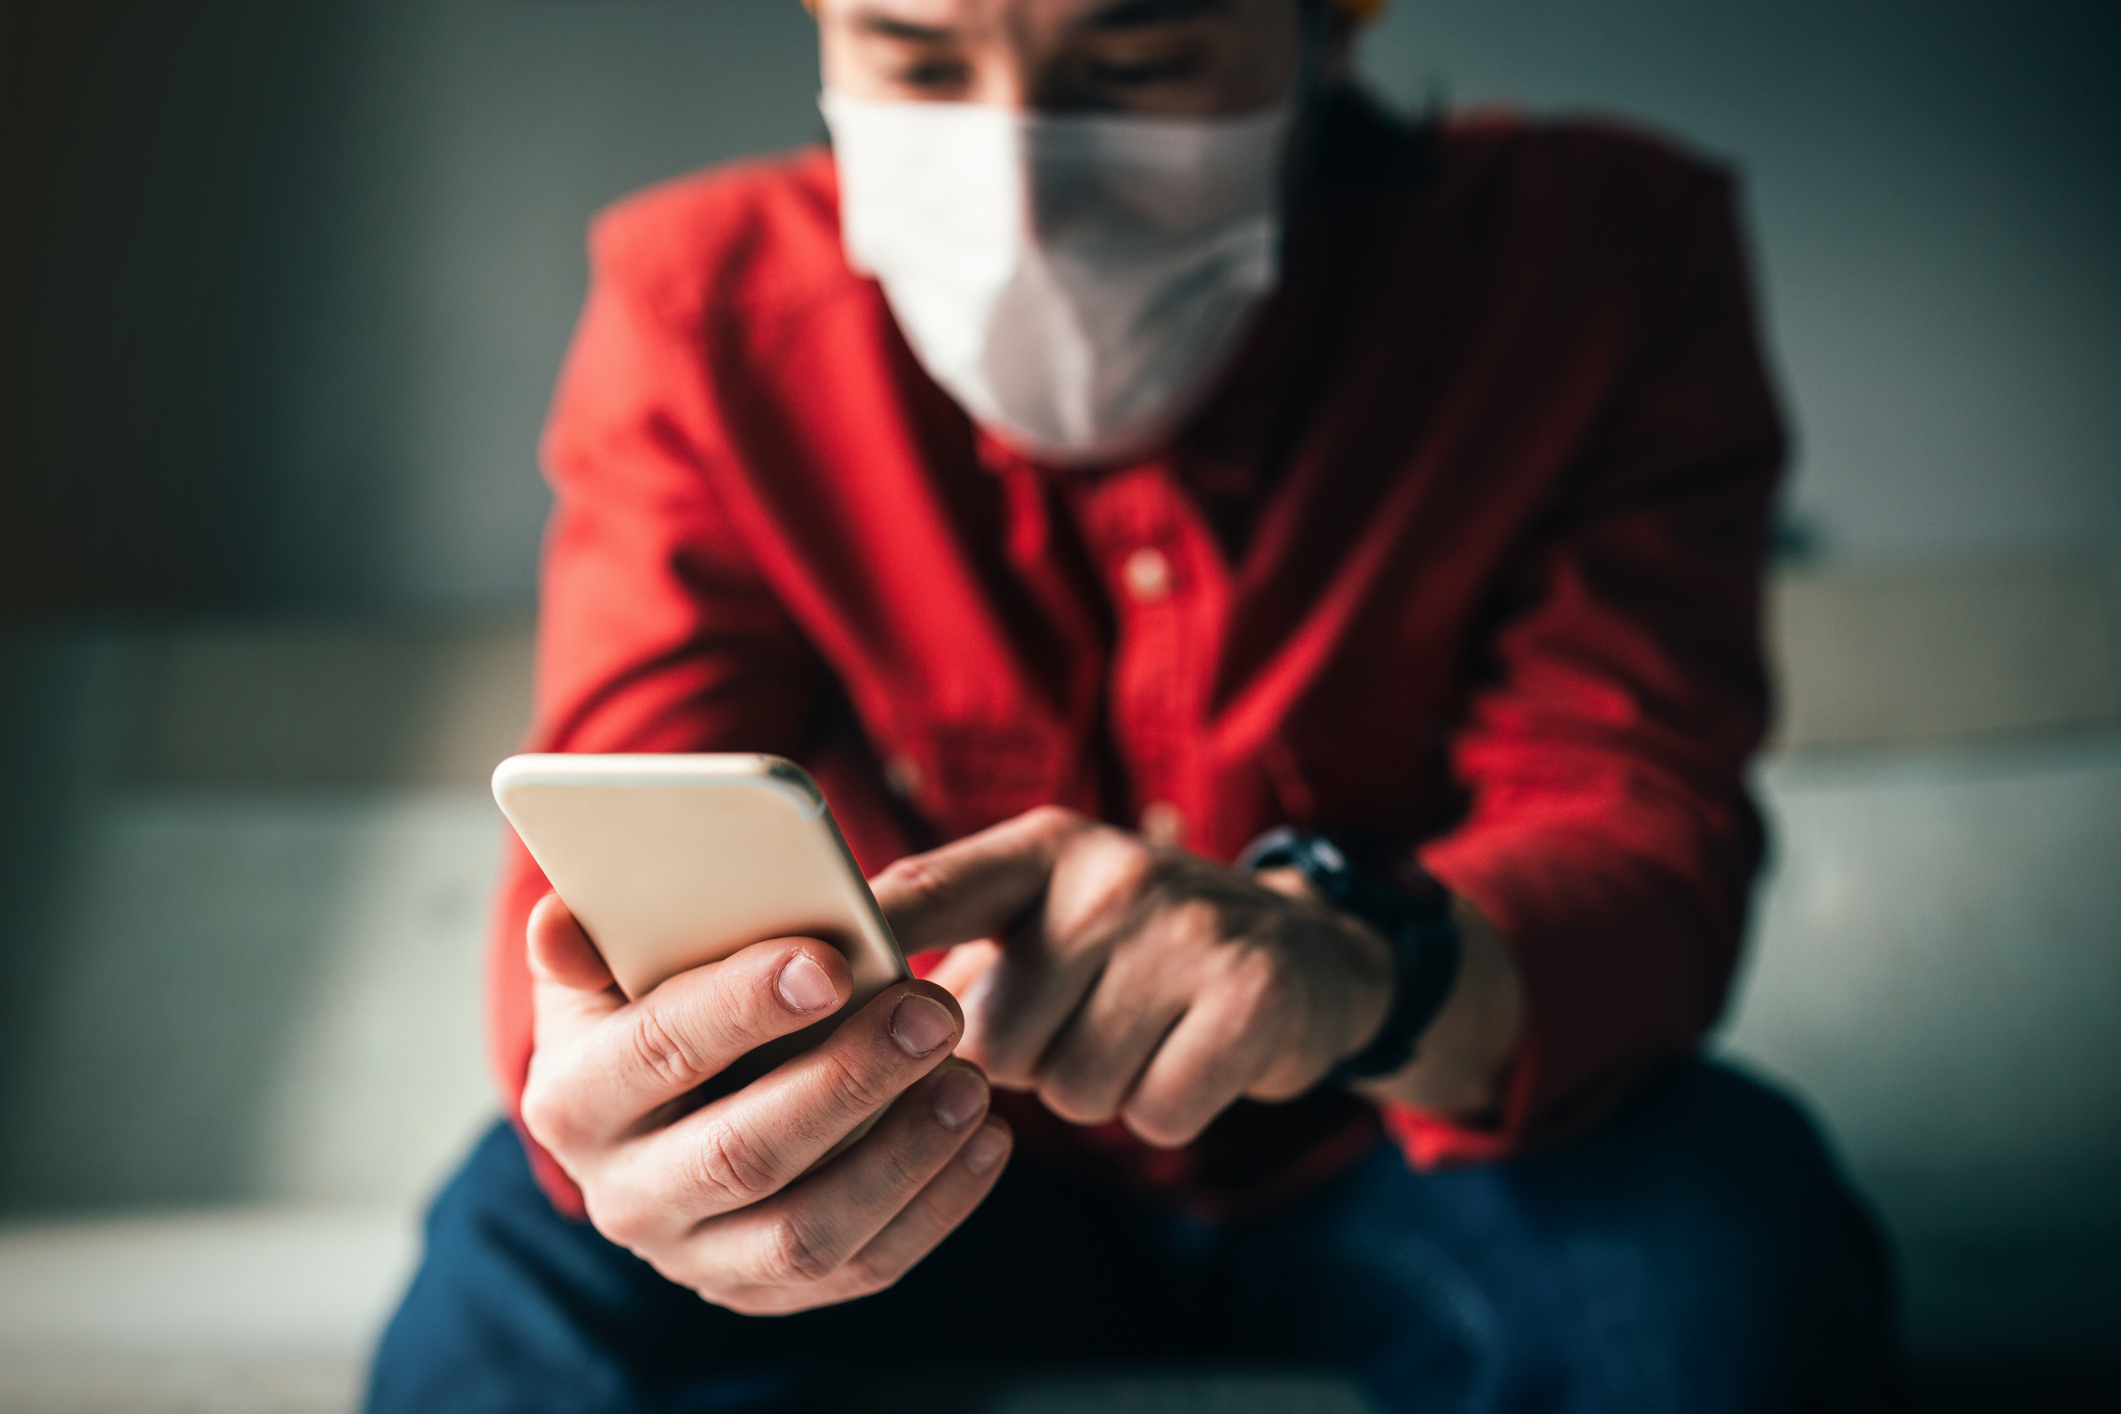 on phone with mask